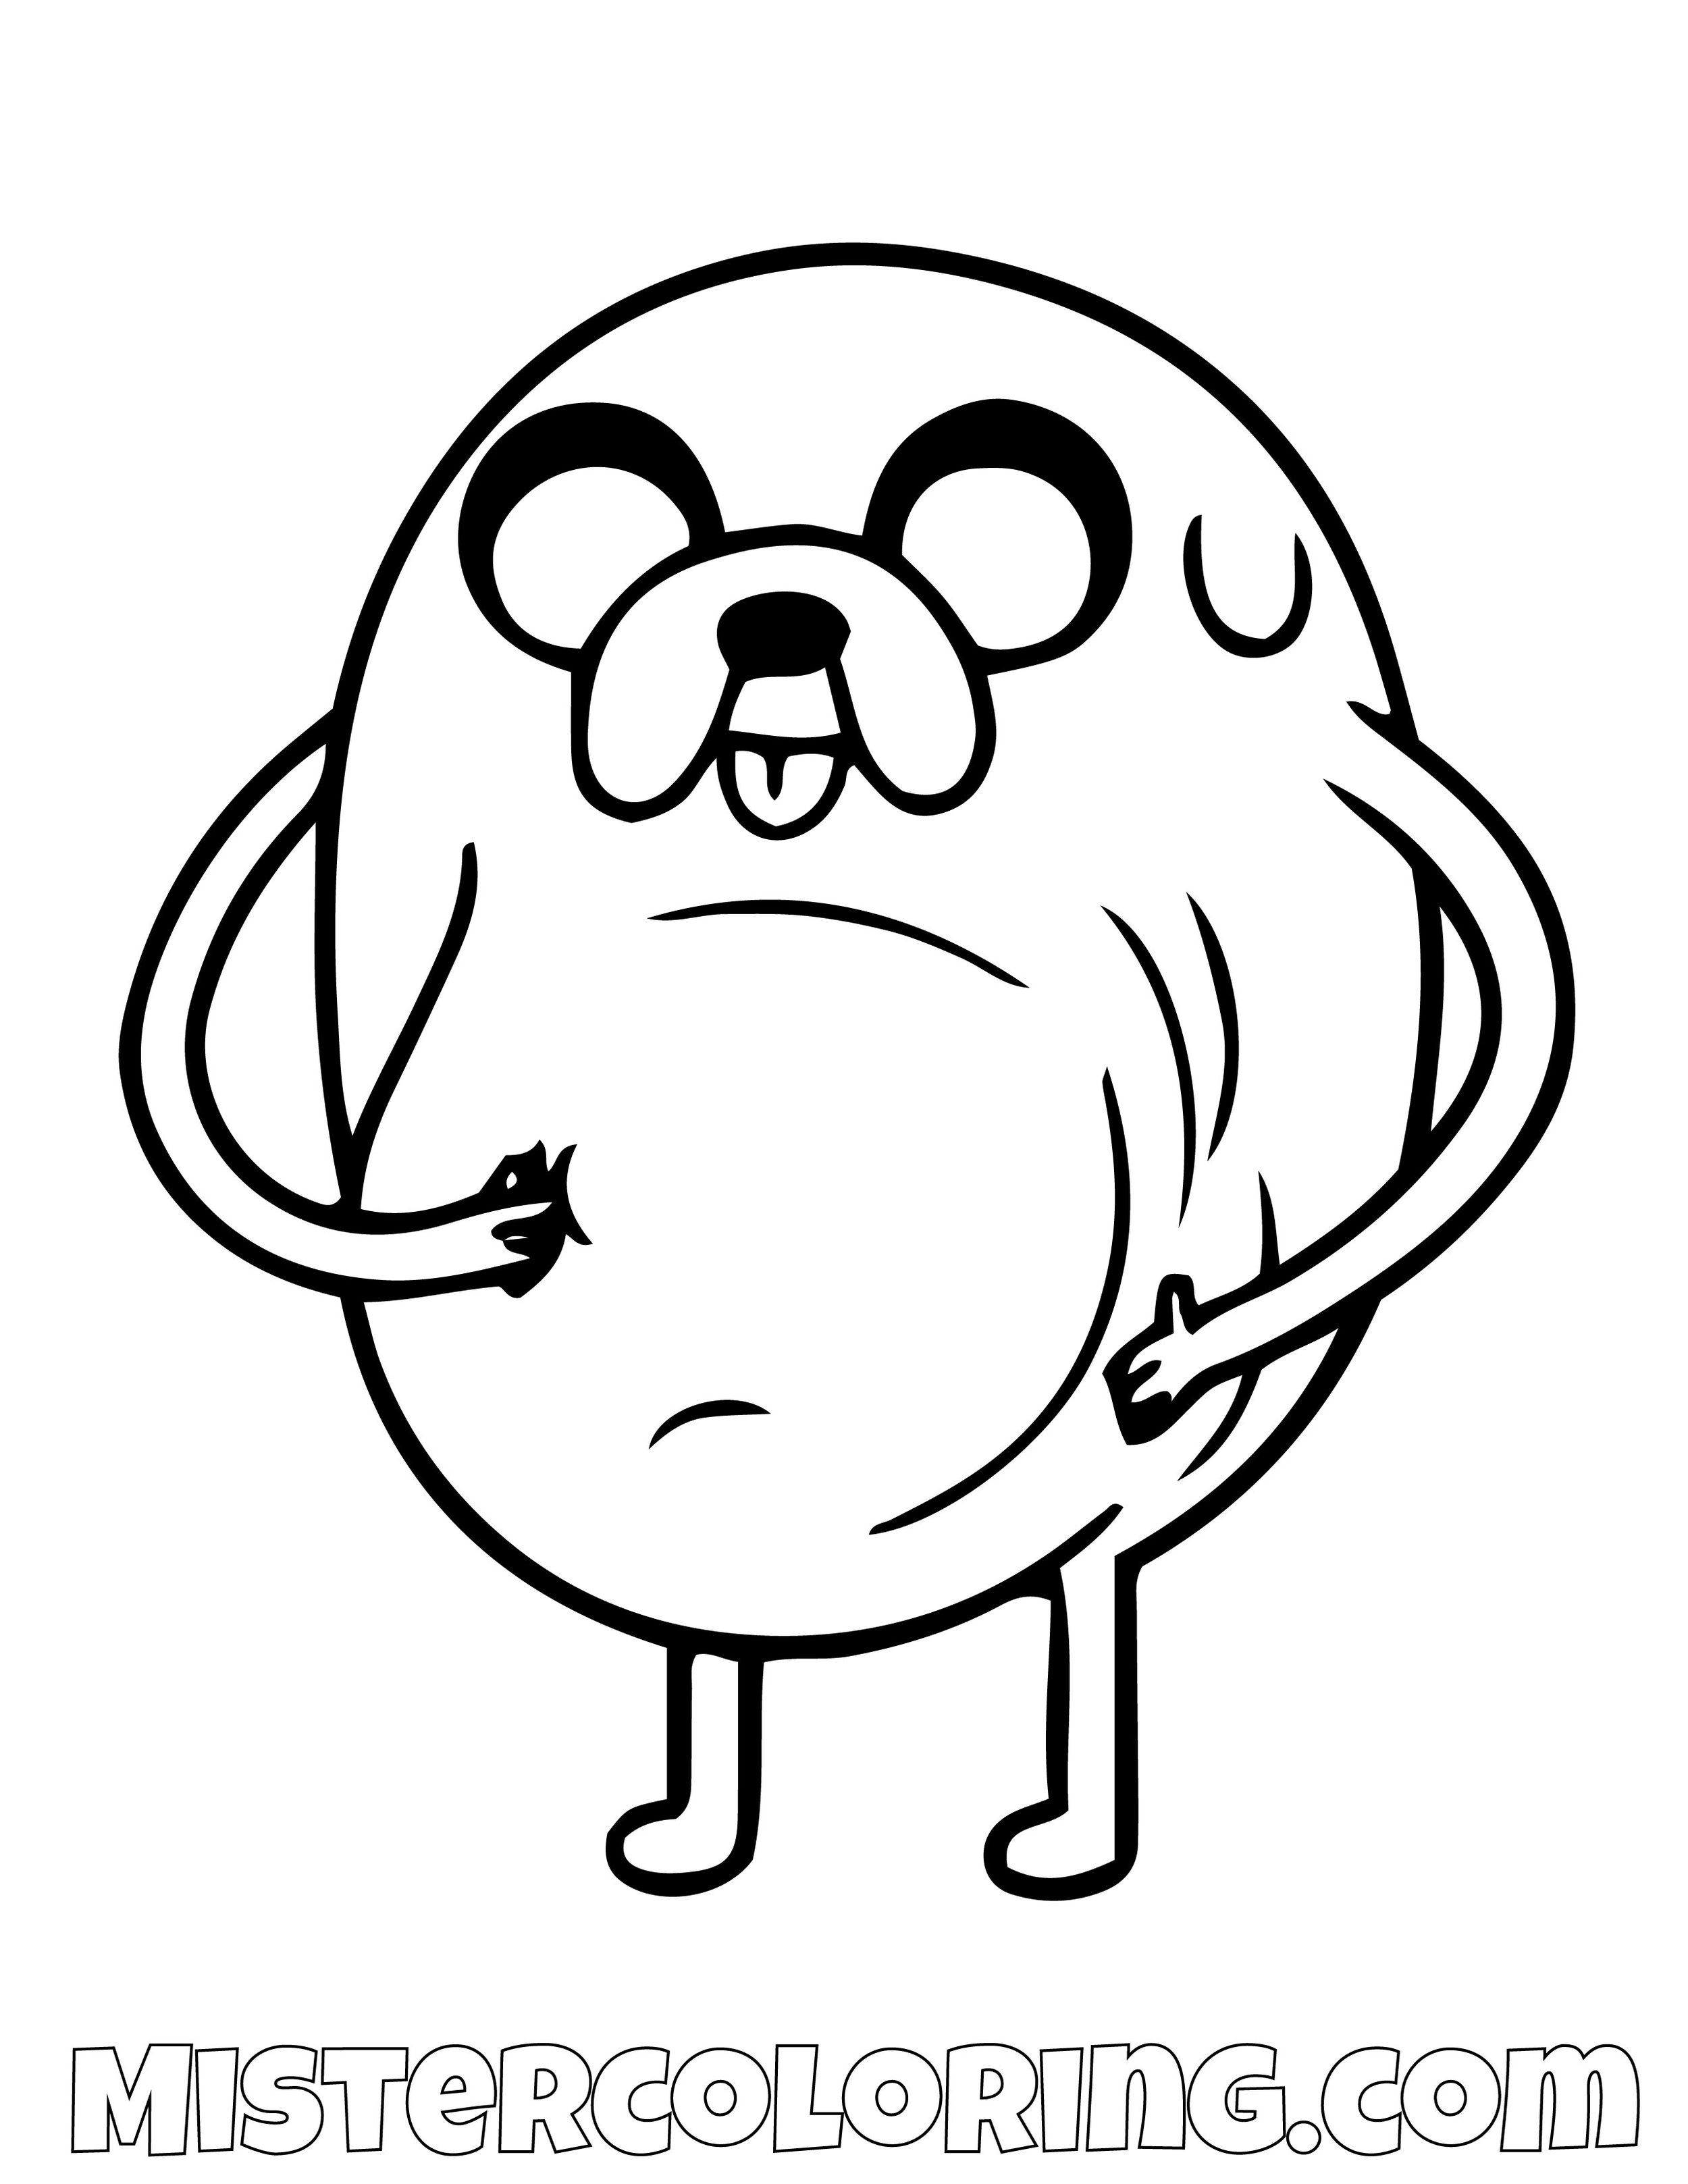 Jake The Dog Big Belly Adventure Time Coloring Page